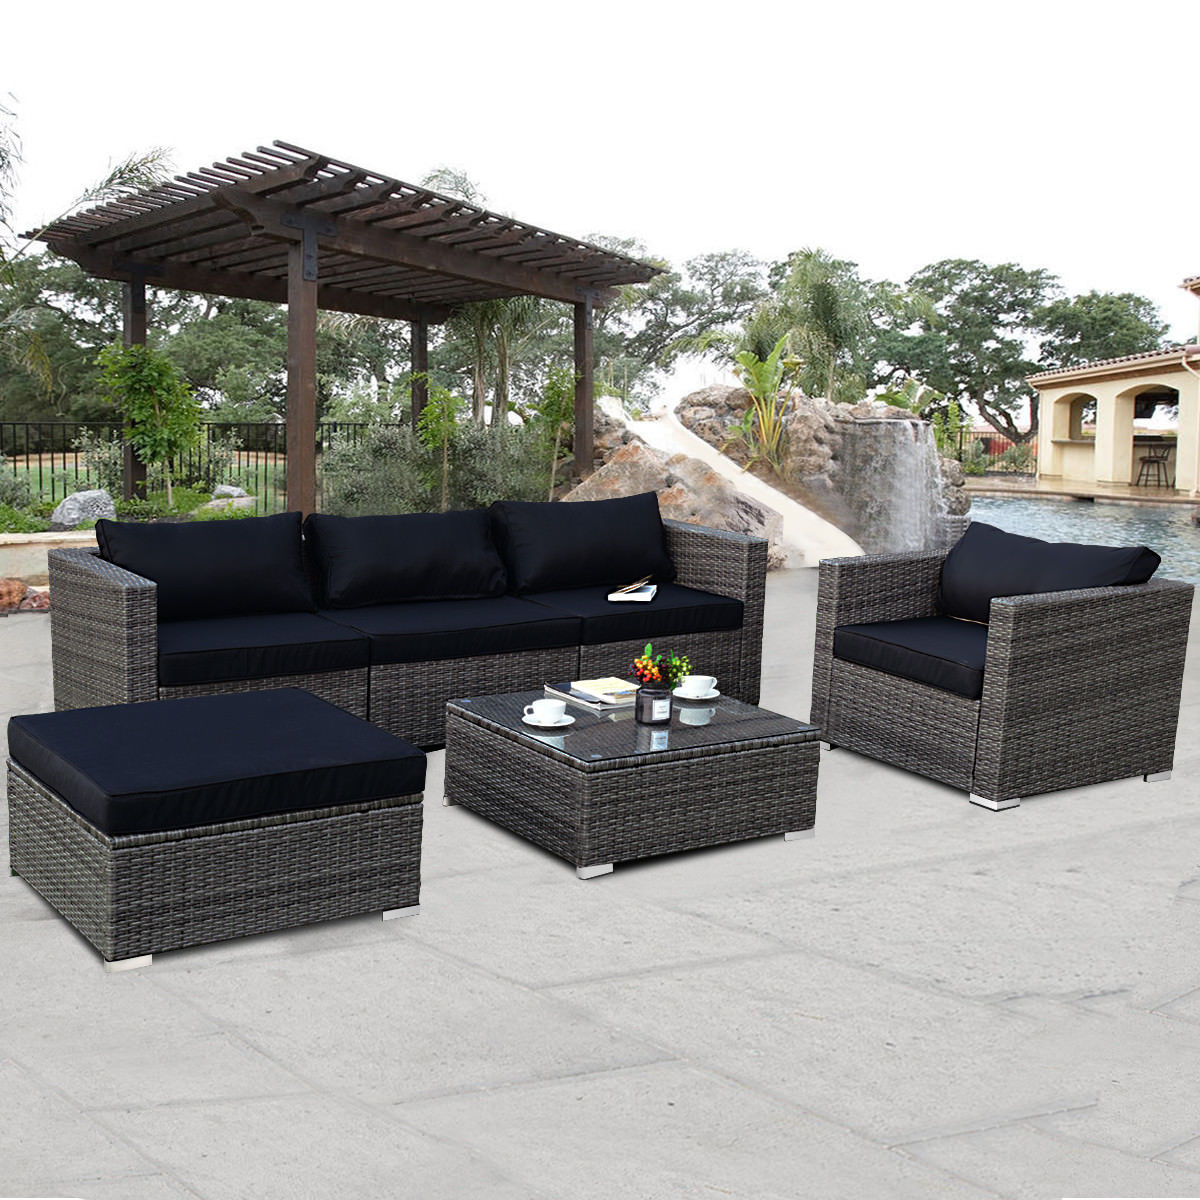 Costway 6-piece Rattan Wicker Patio Furniture Set Sectional Sofa Couch Yard W/Black Cushion